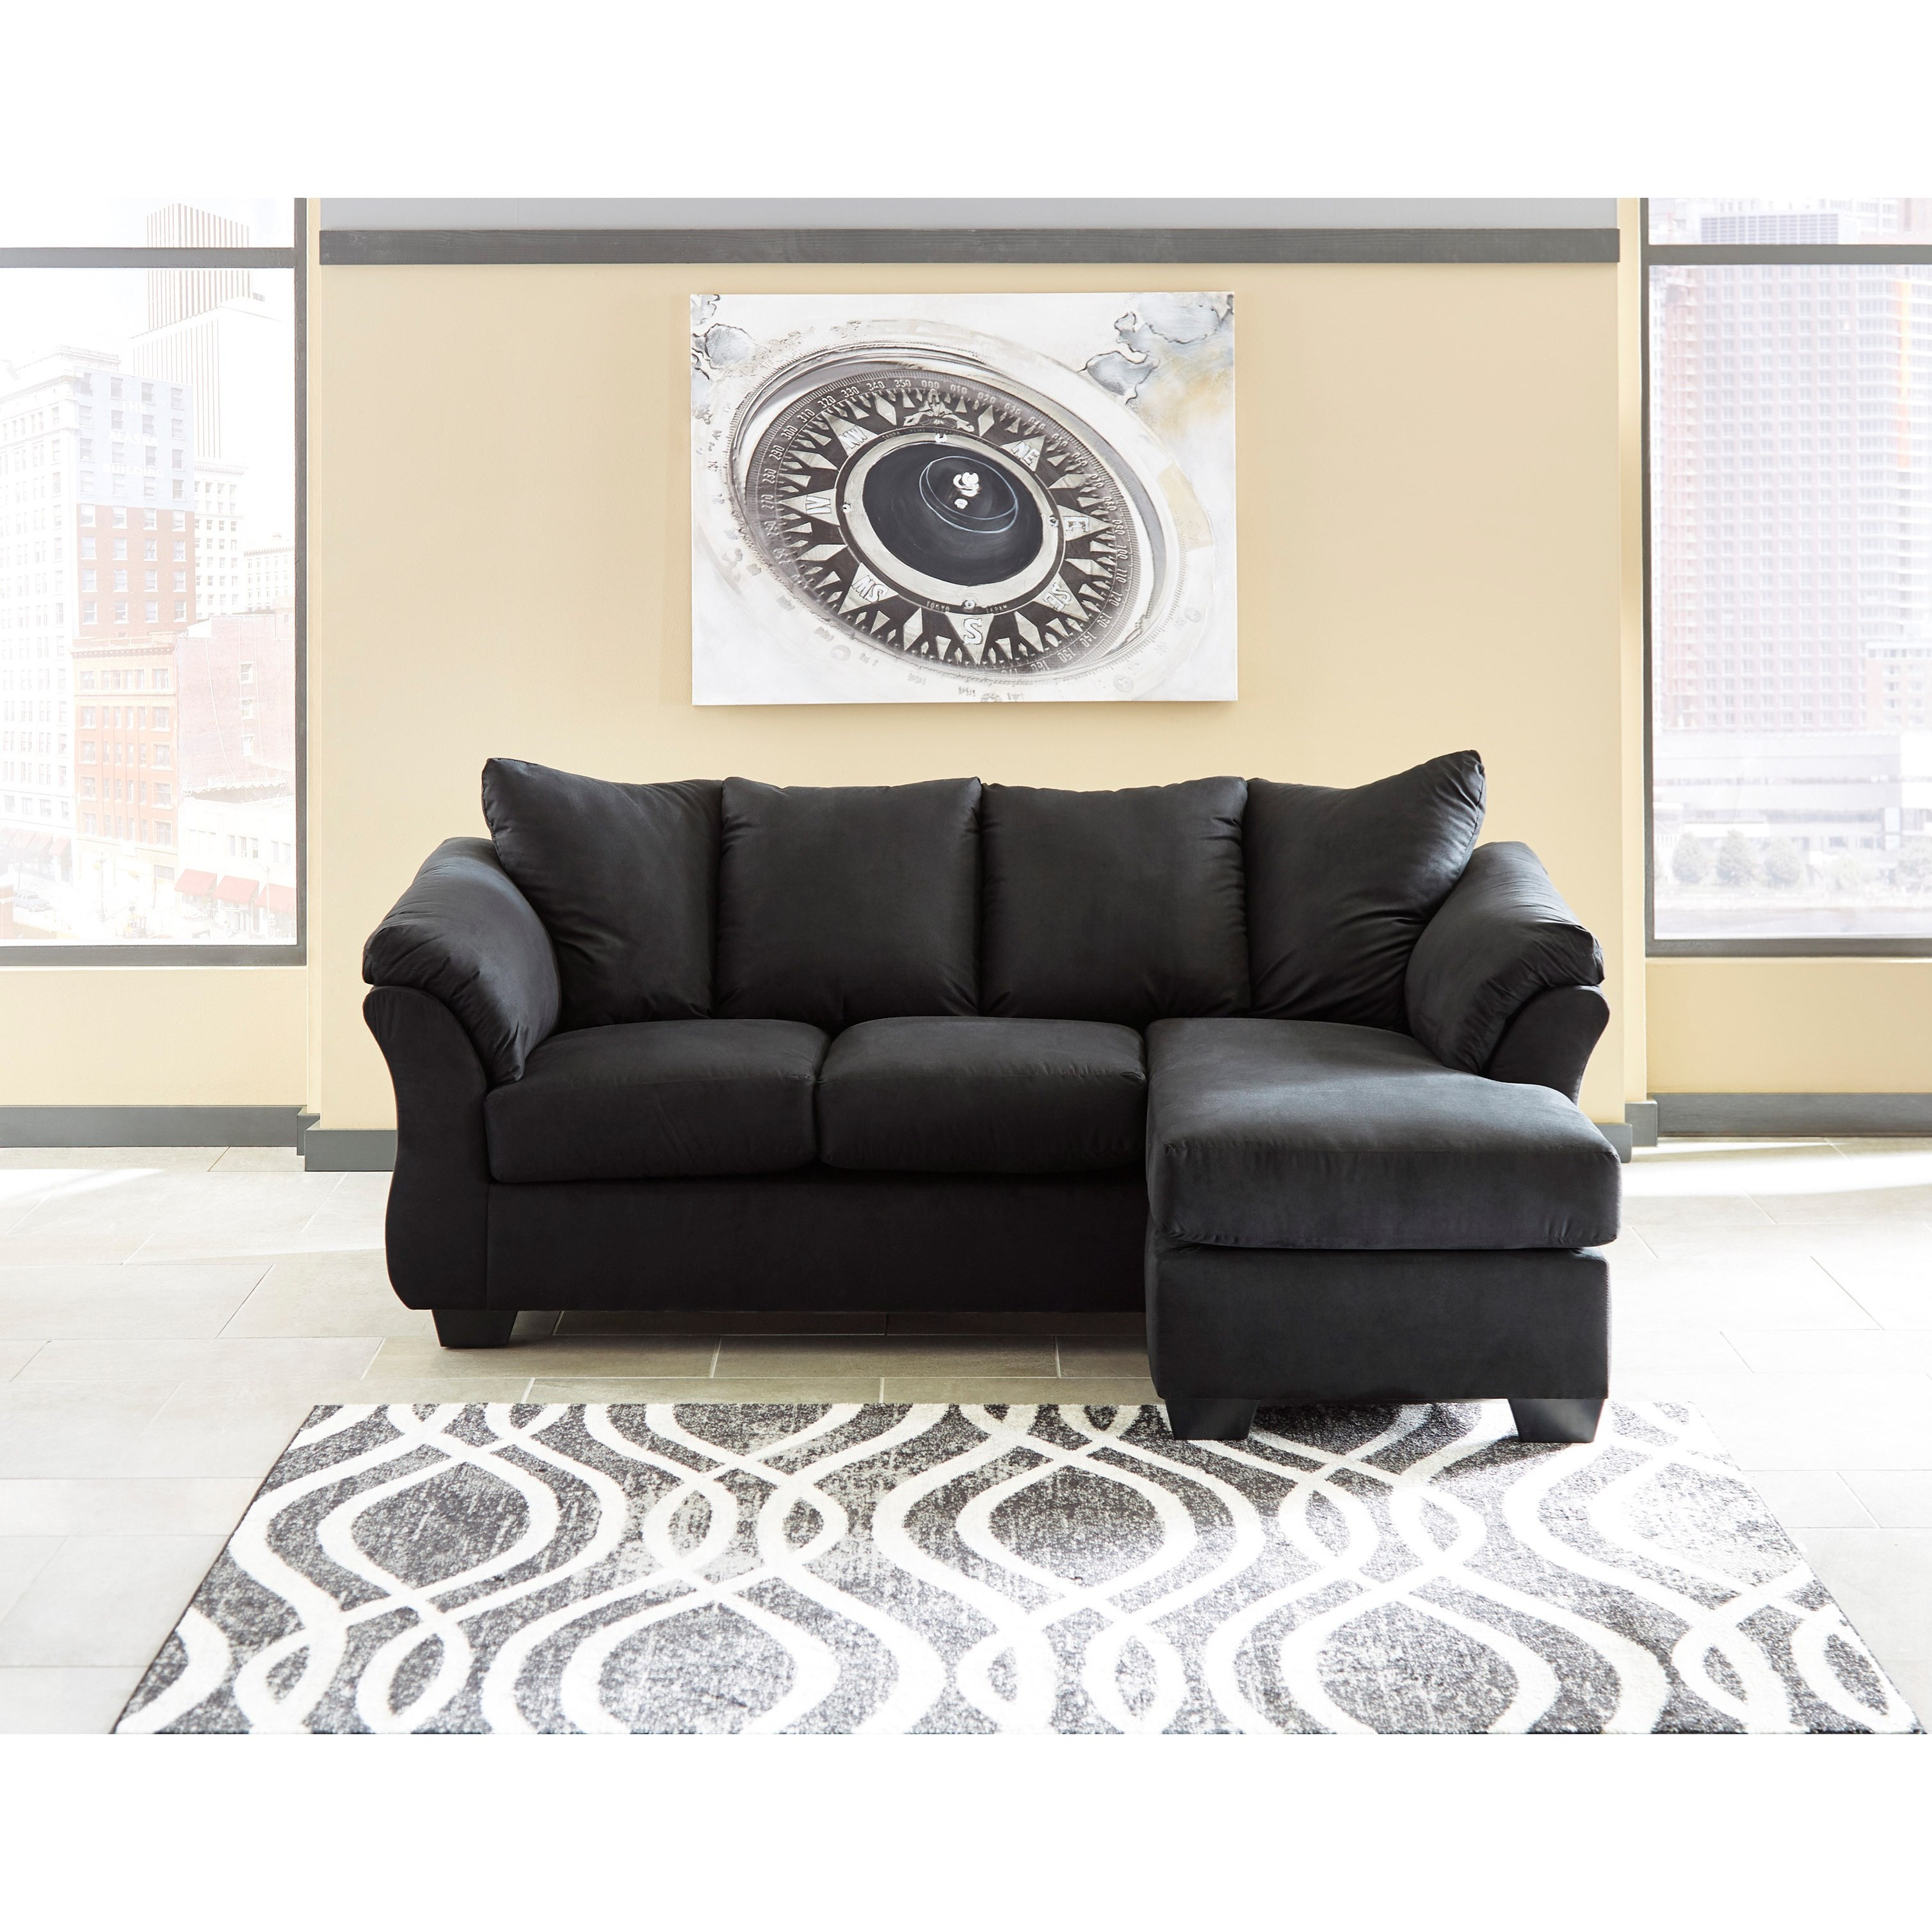 Pillows For Sectional Sofa: Contemporary Sofa Chaise With Flared Back Pillows By